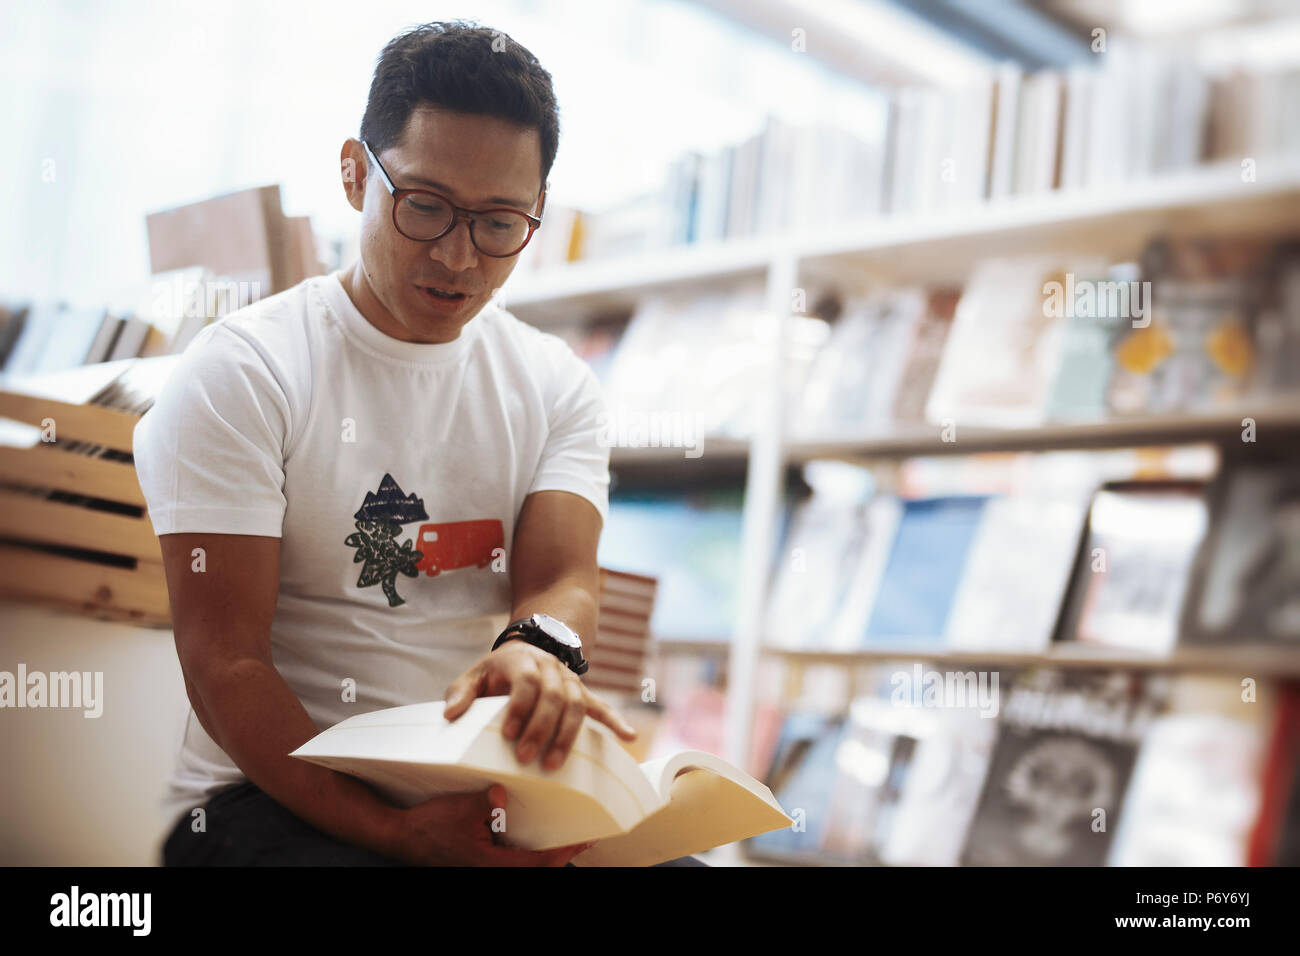 Young spectacled brunette man sitting next to book shelves and opening a book. - Stock Image